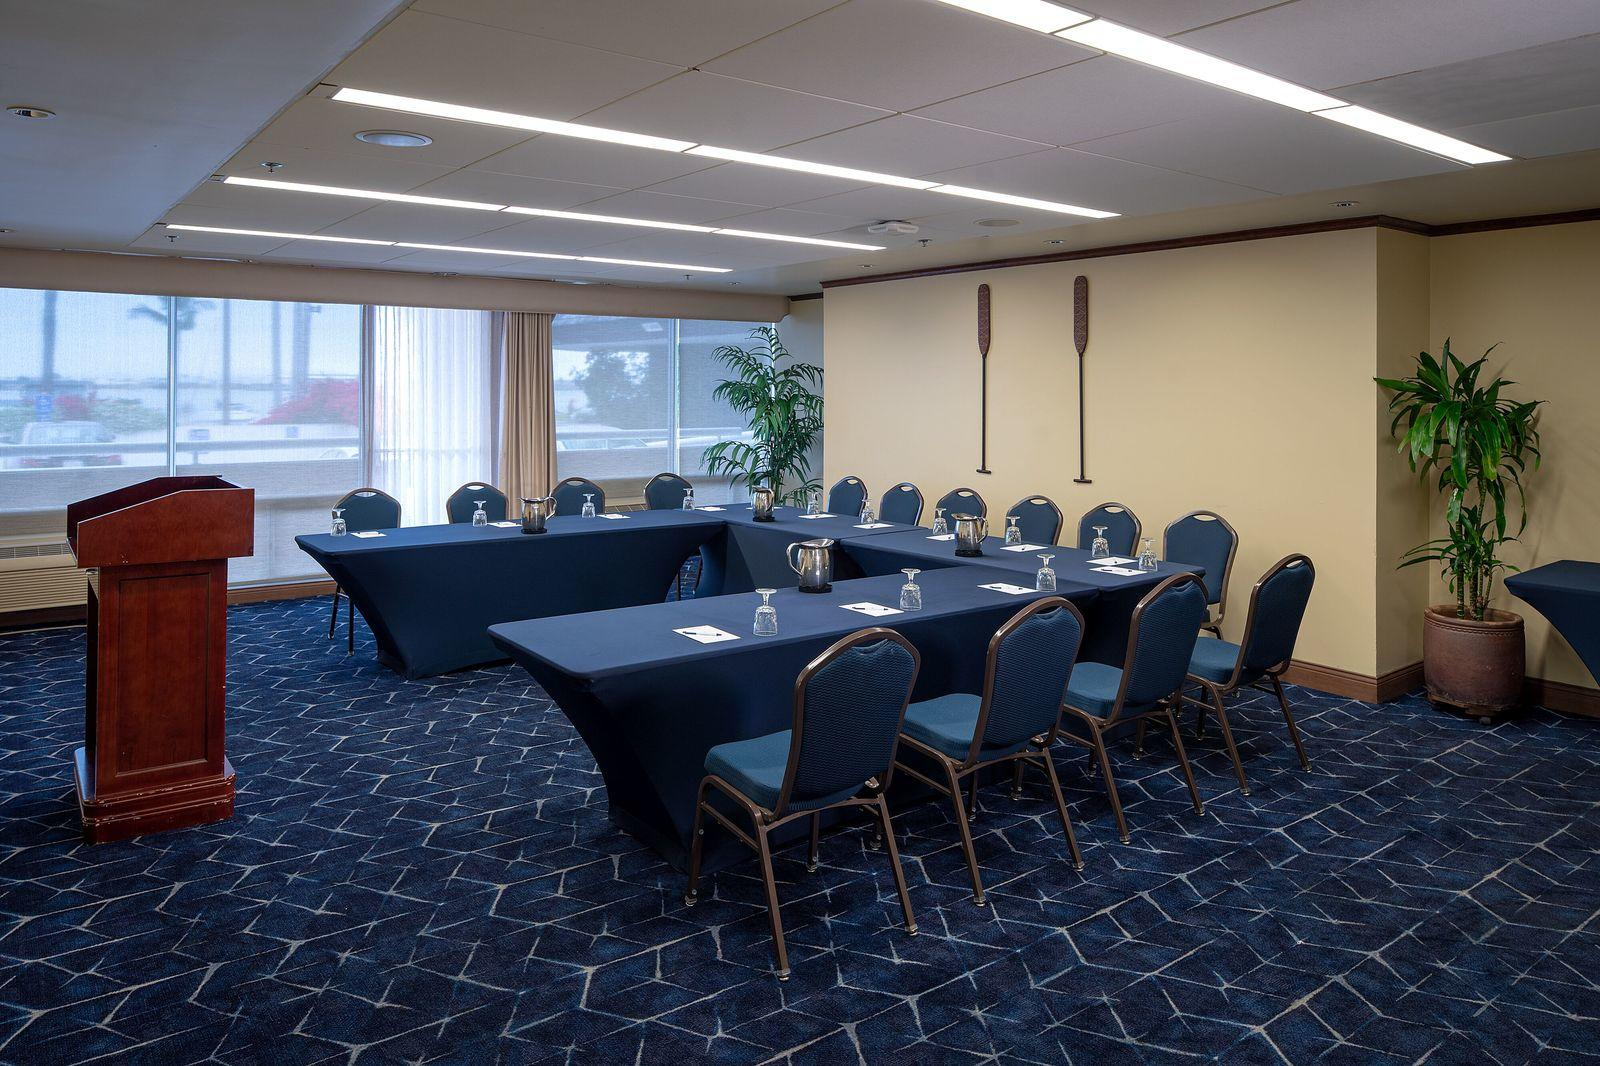 L-shaped desk facing a wooden podium in hotel conference room